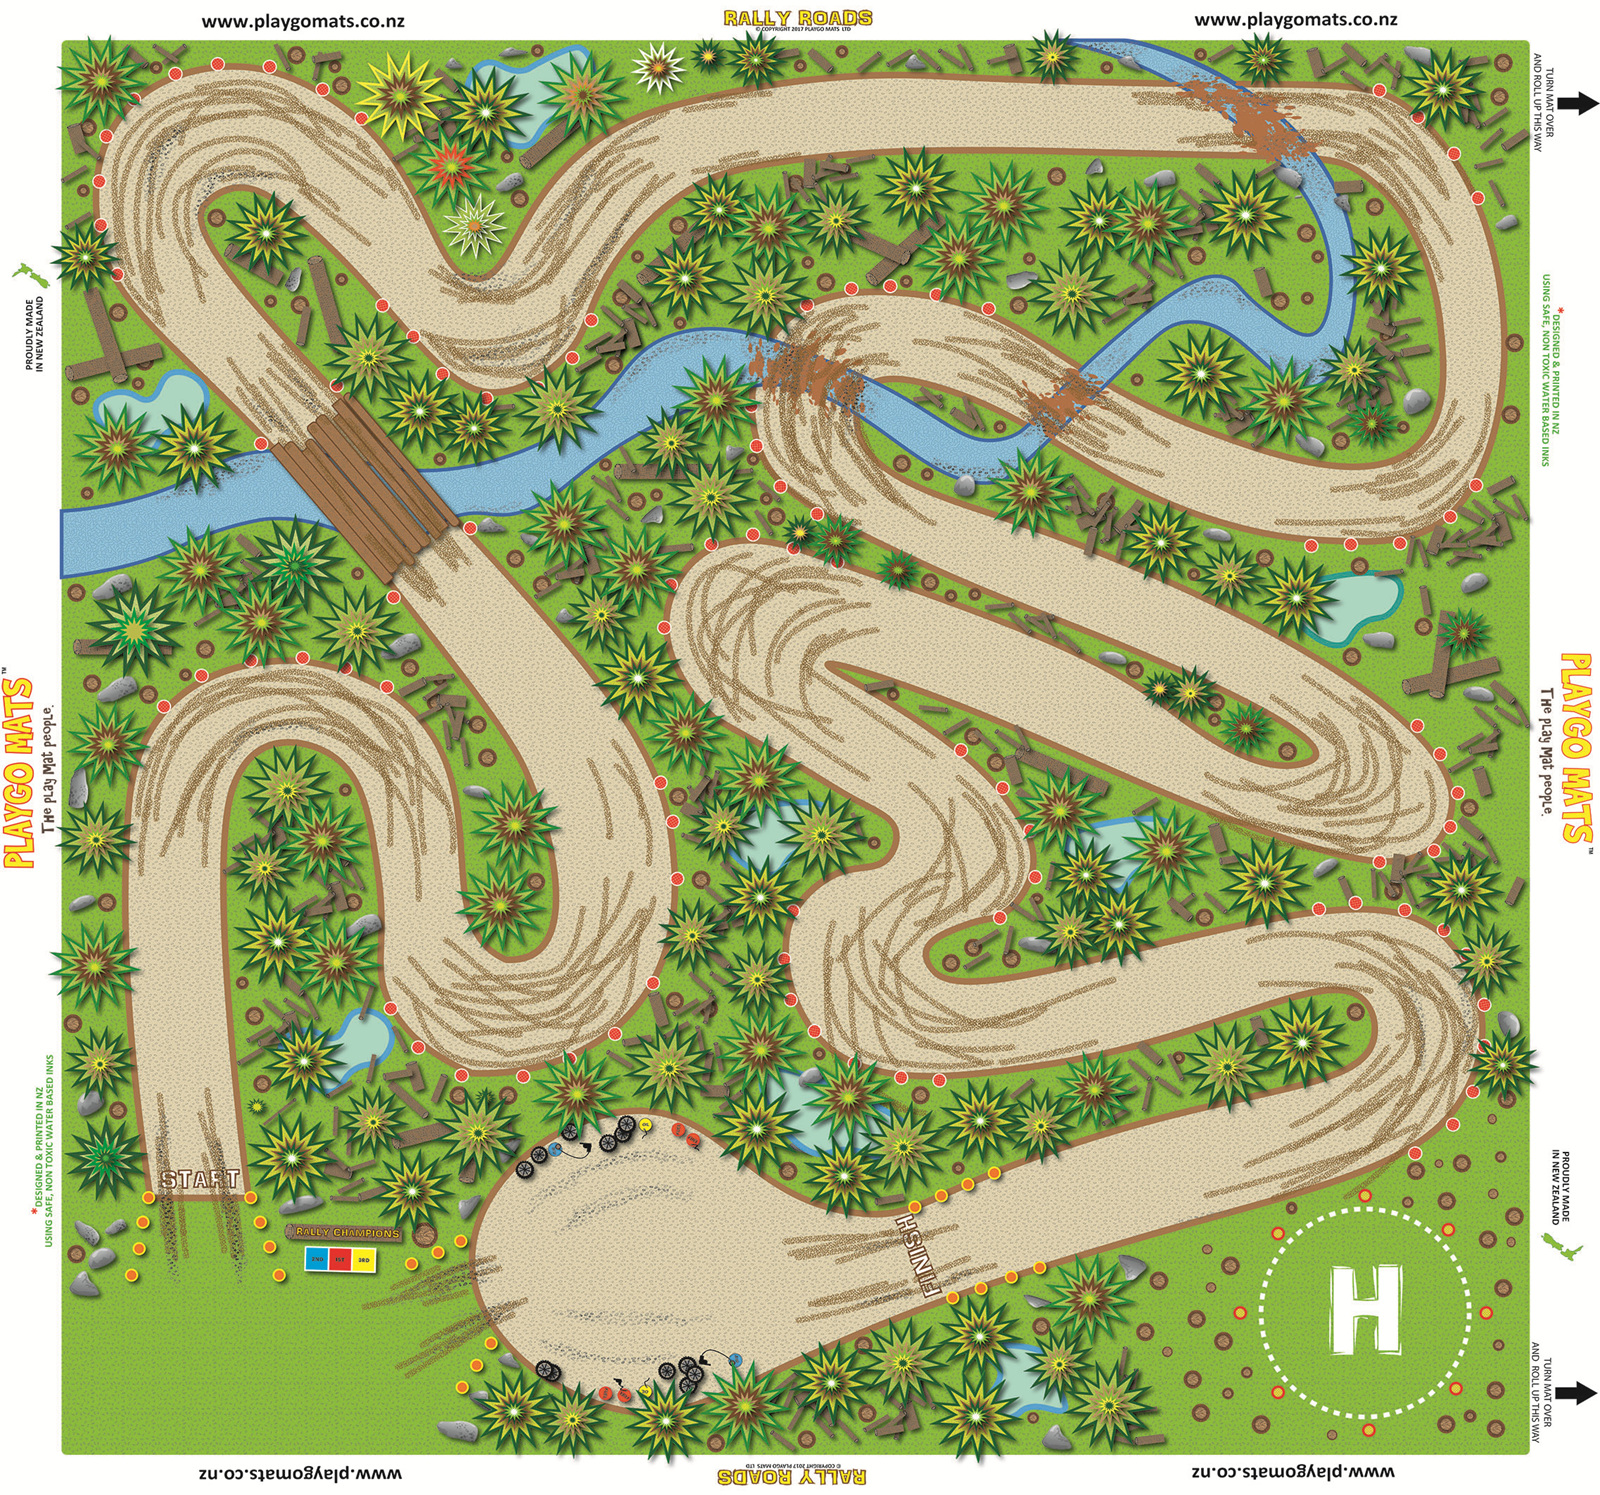 Rally Roads Playgo Mats